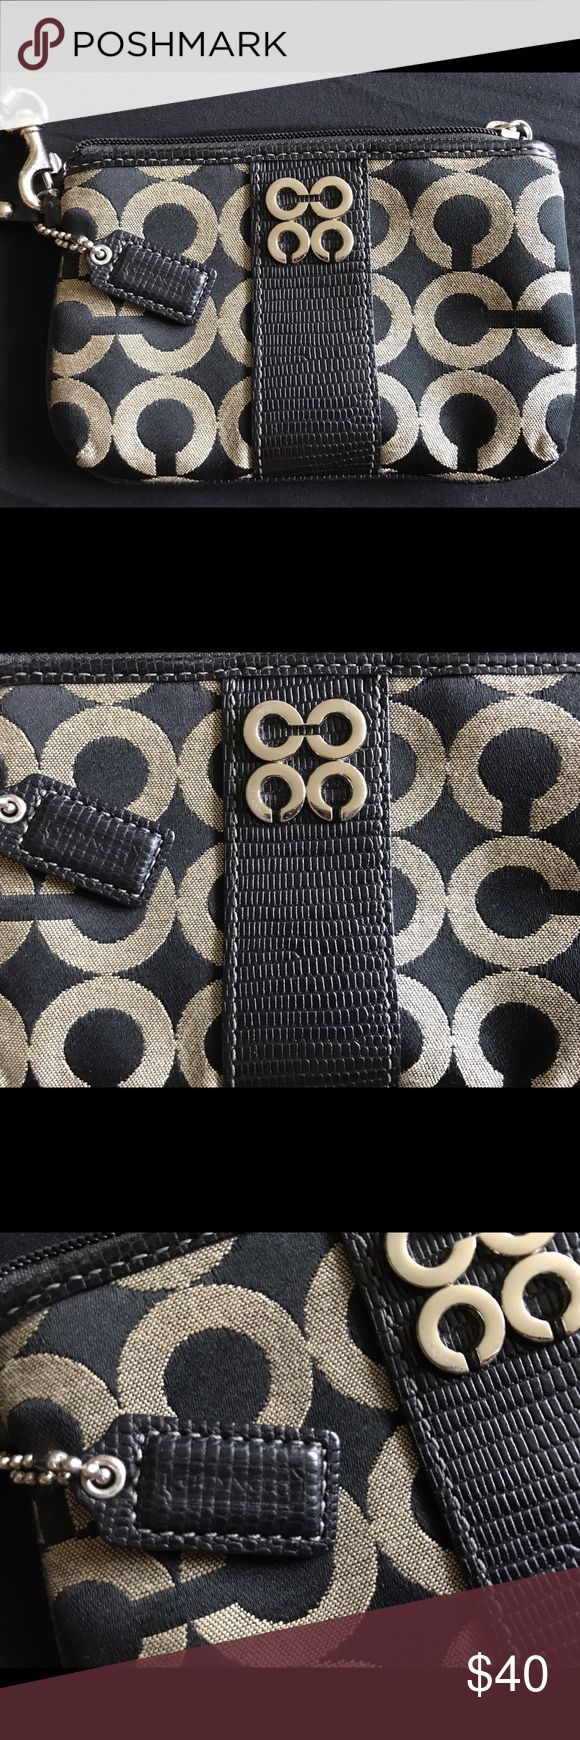 Coach Wristlet Coach Wristlet, condition: excellent, barely used Coach Bags Wallets